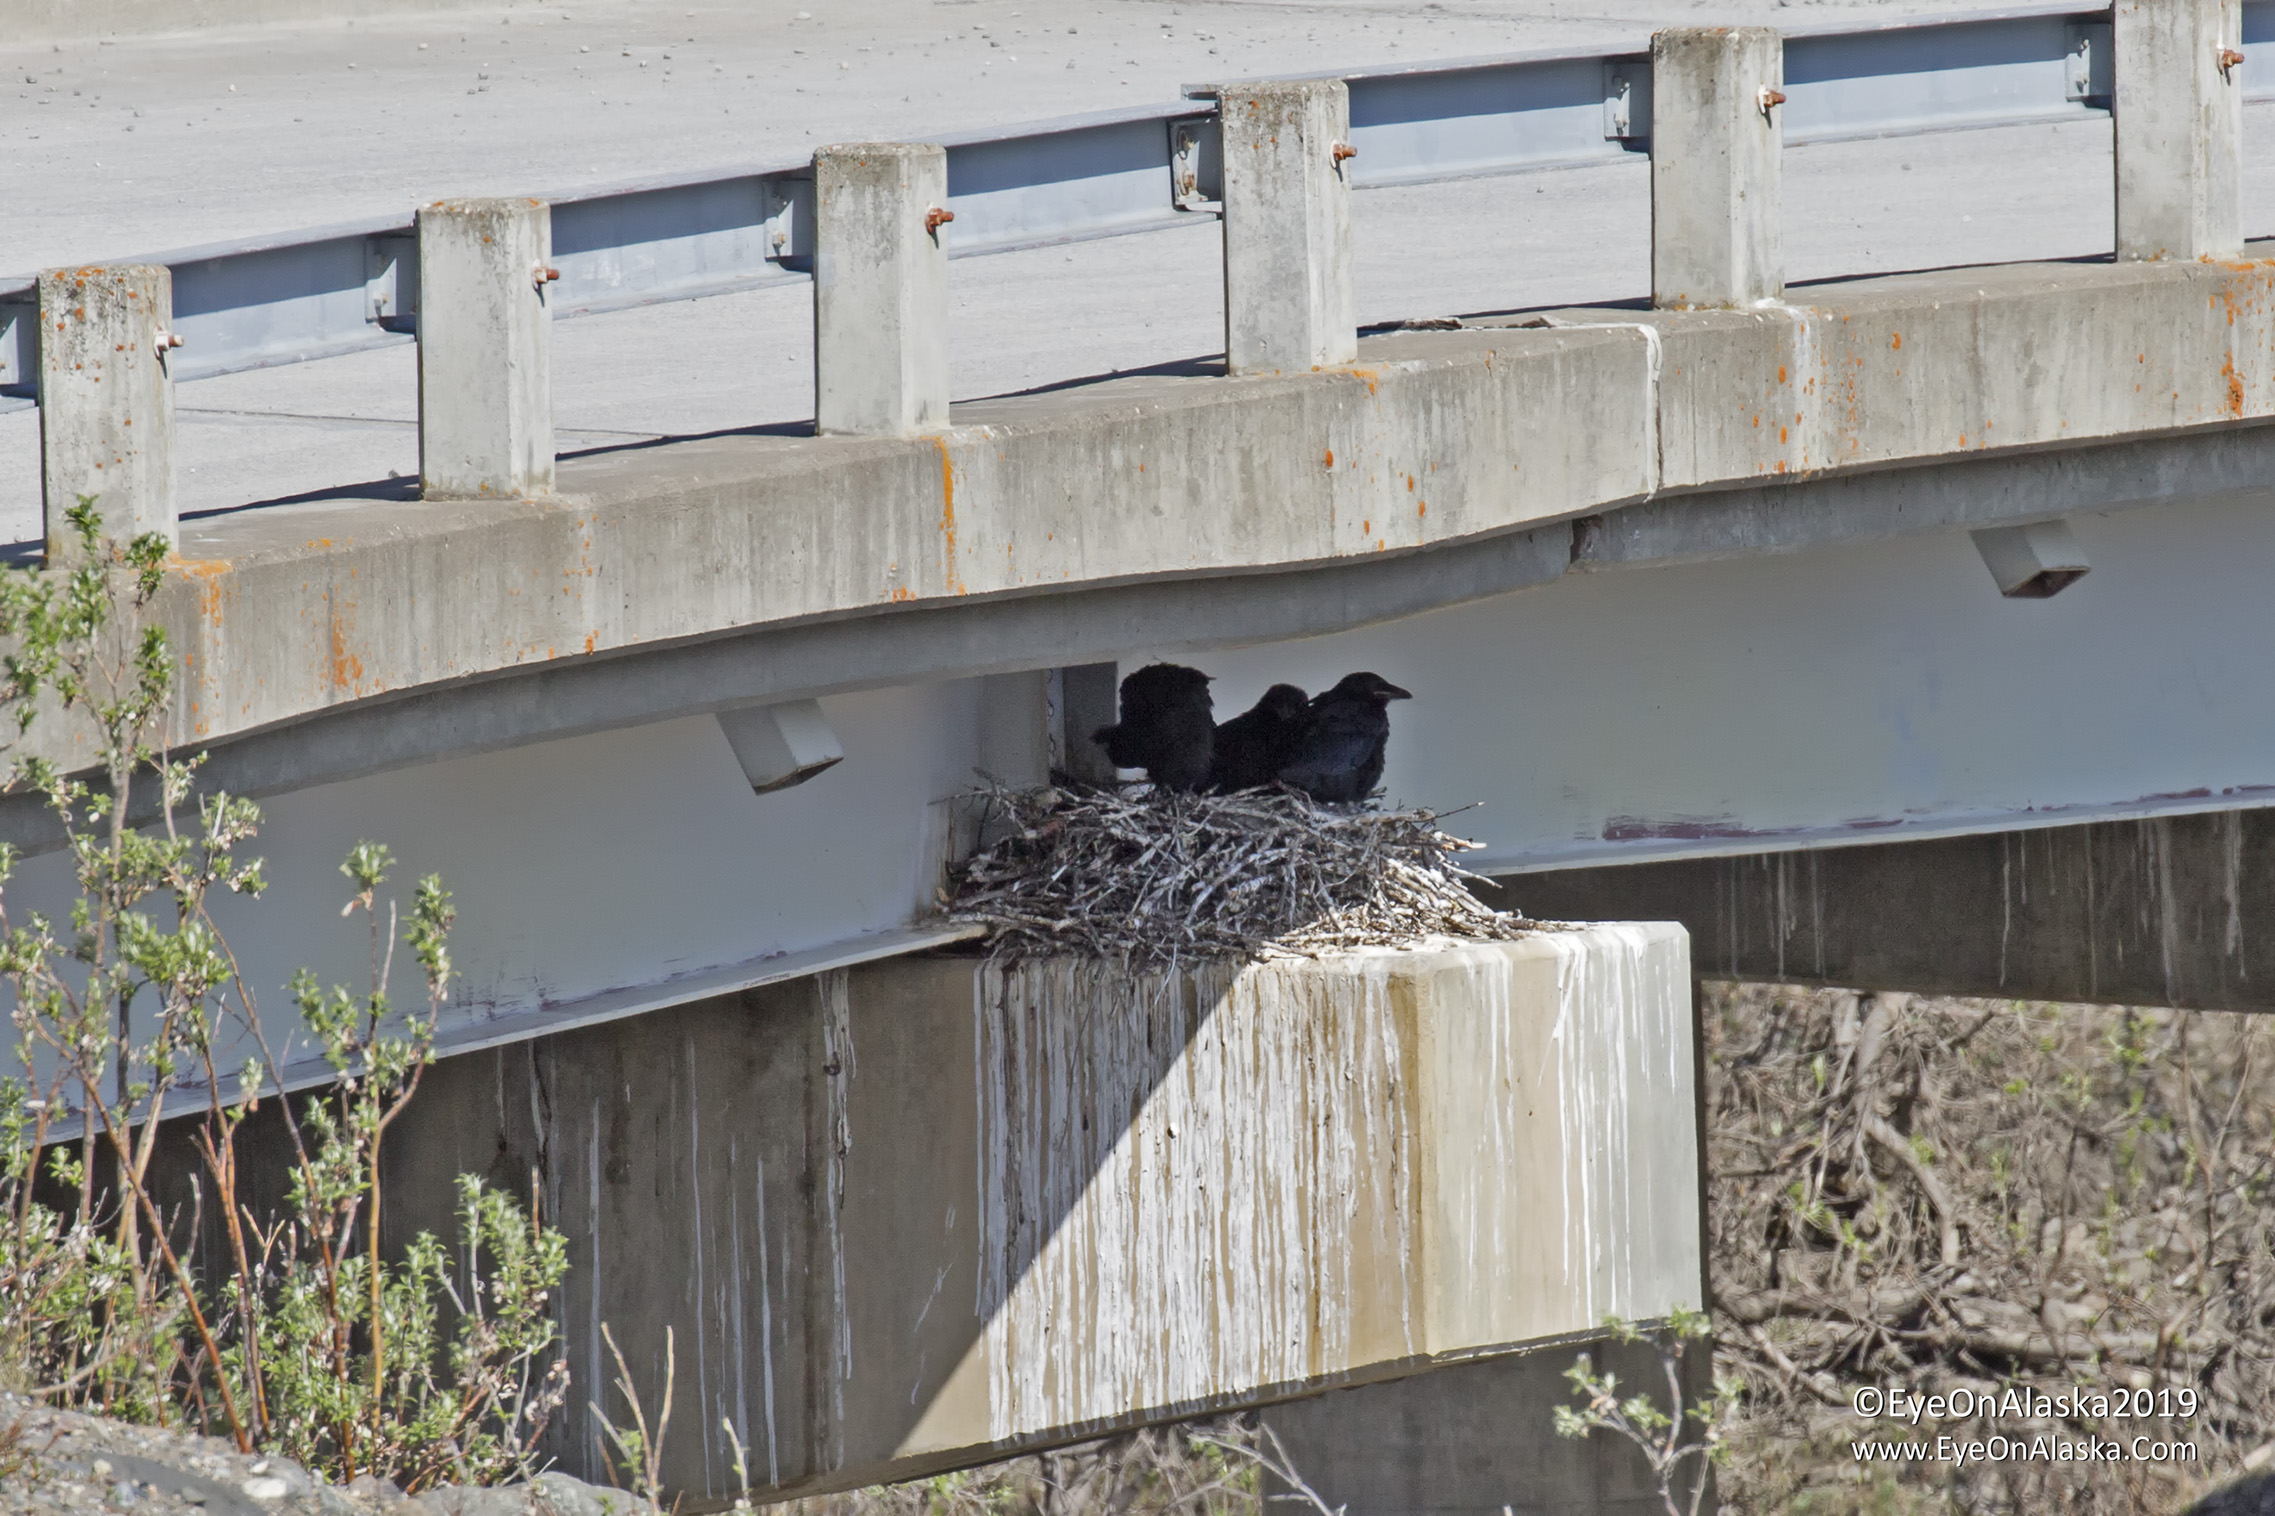 Baby ravens in the nest again under the Sable Pass bridge. This is the 3rd year we've seen them on the nest here.